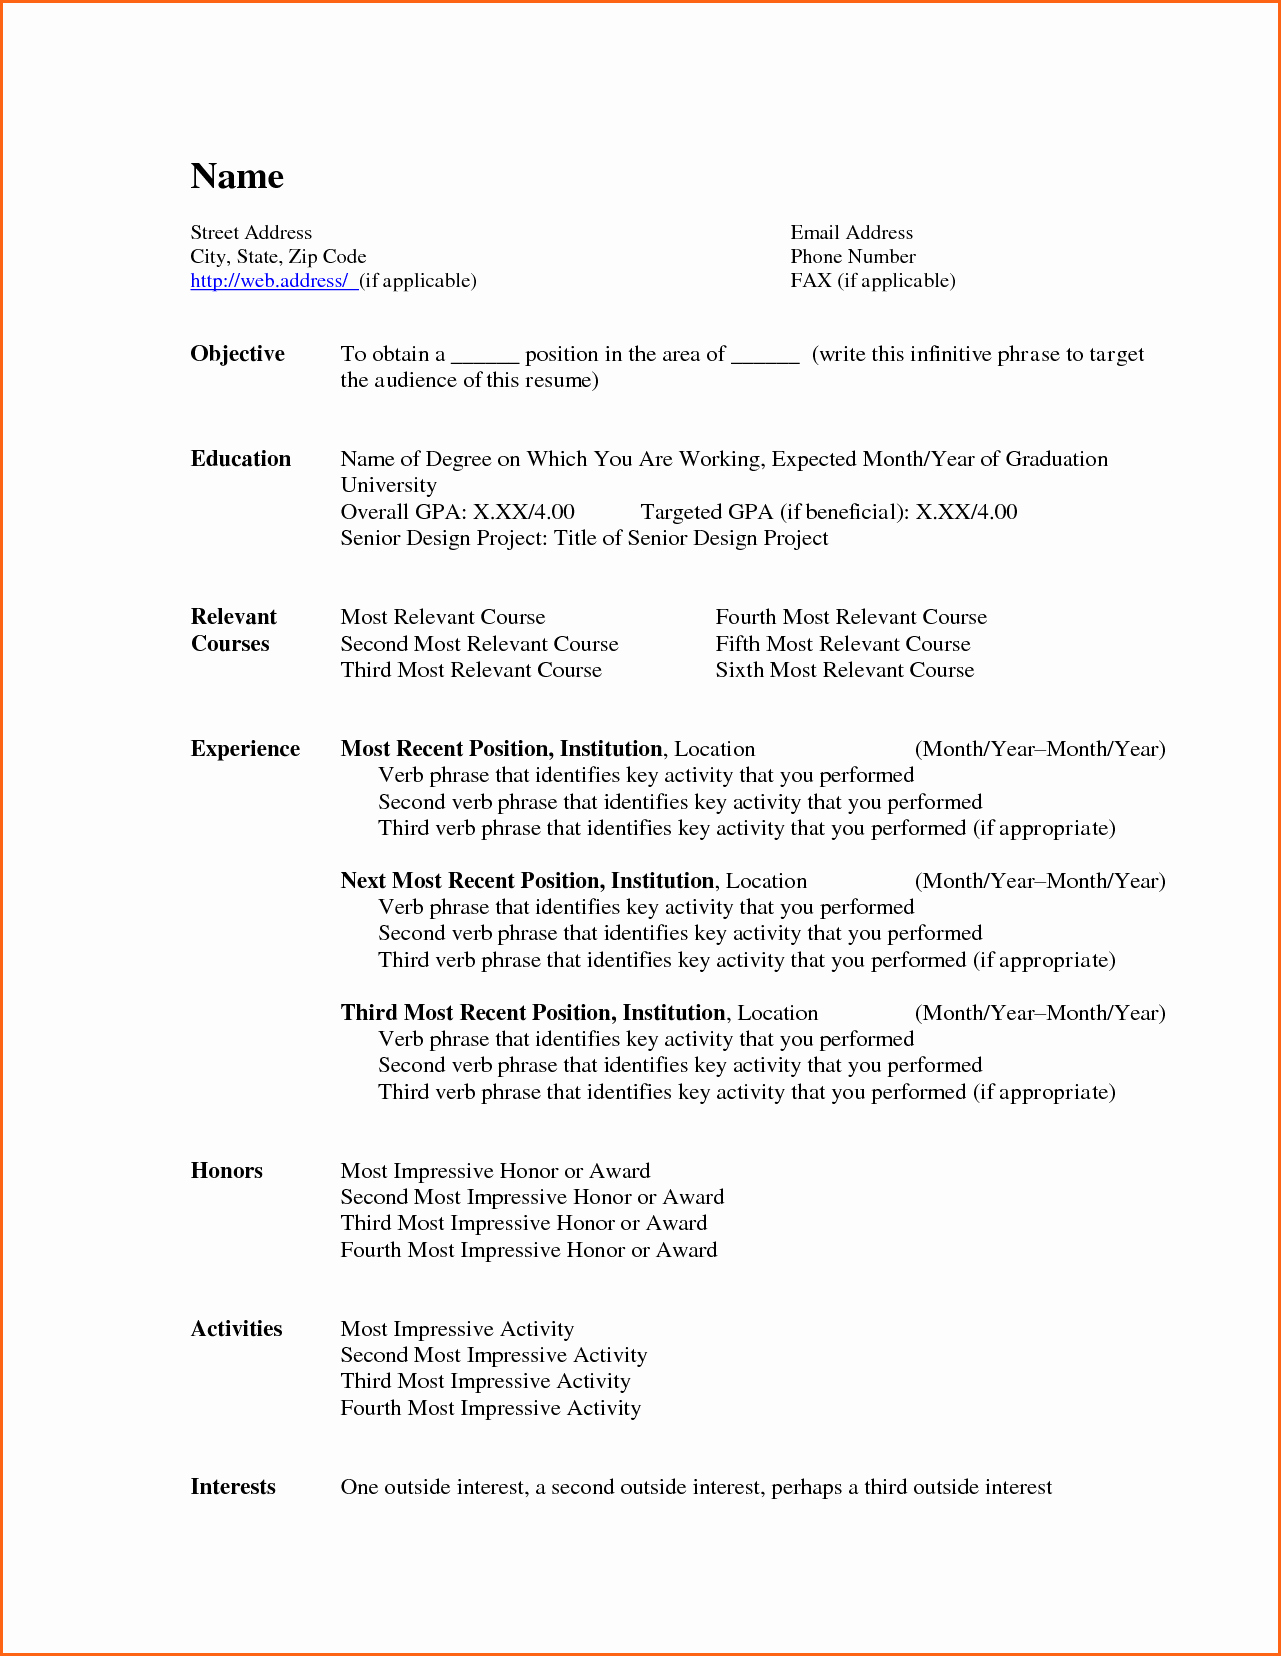 Resume Template Ms Word 2007 Inspirational 6 Free Resume Templates Microsoft Word 2007 Bud